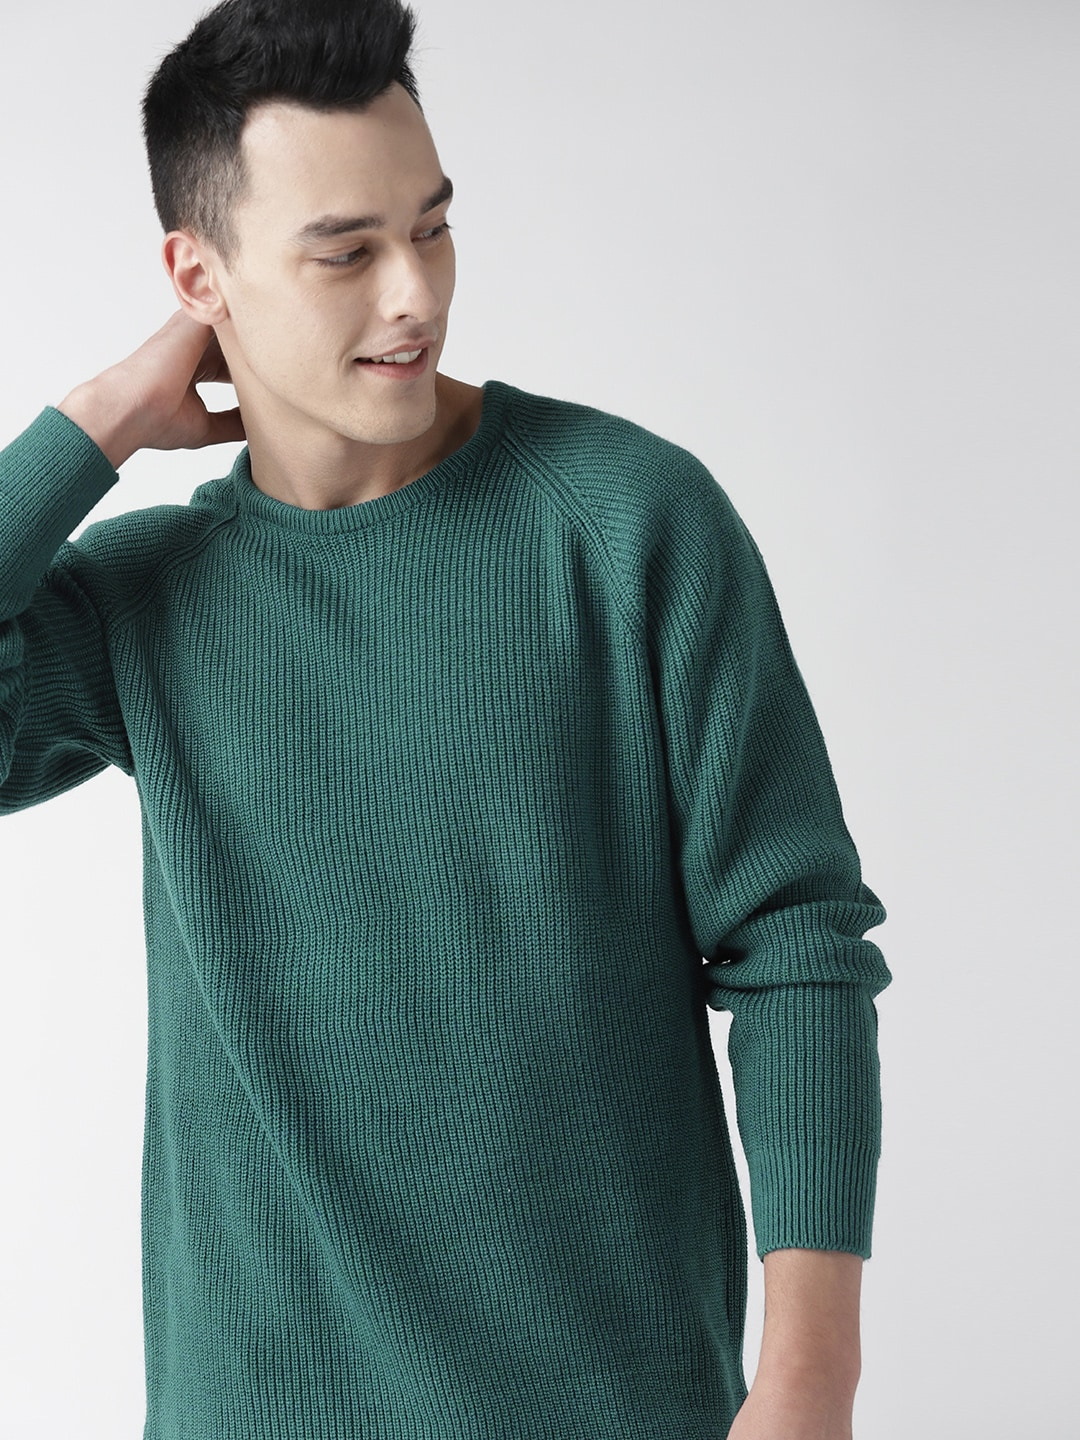 Mast & Harbour Men Teal Green Ribbed Sweater-10323045